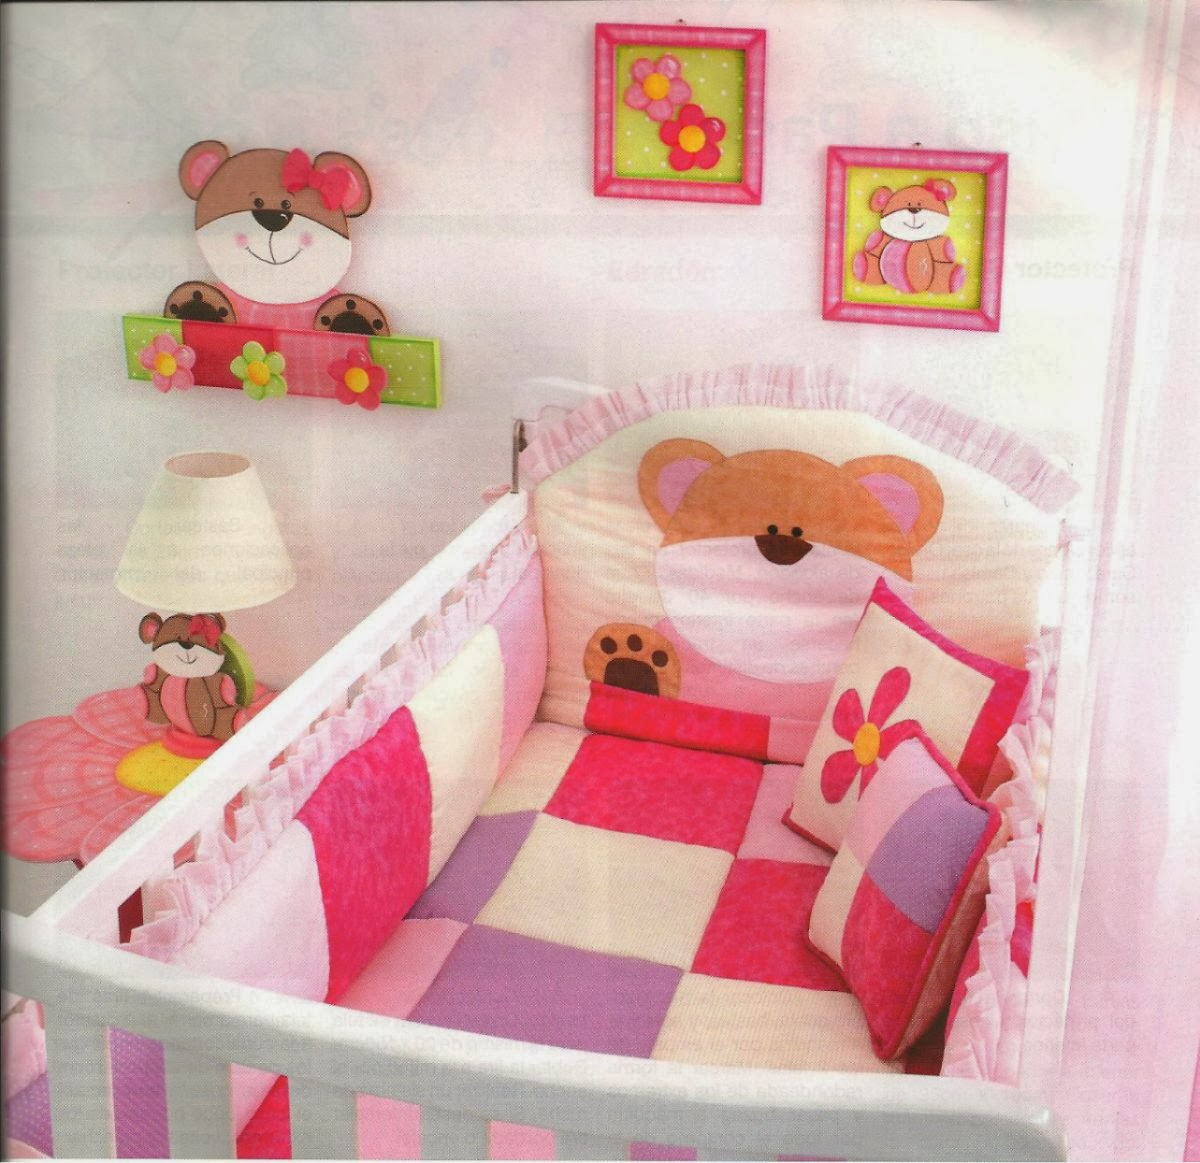 Imagenes fantasia y color como decorar el cuarto del bebe for Cosas para decorar mi cuarto